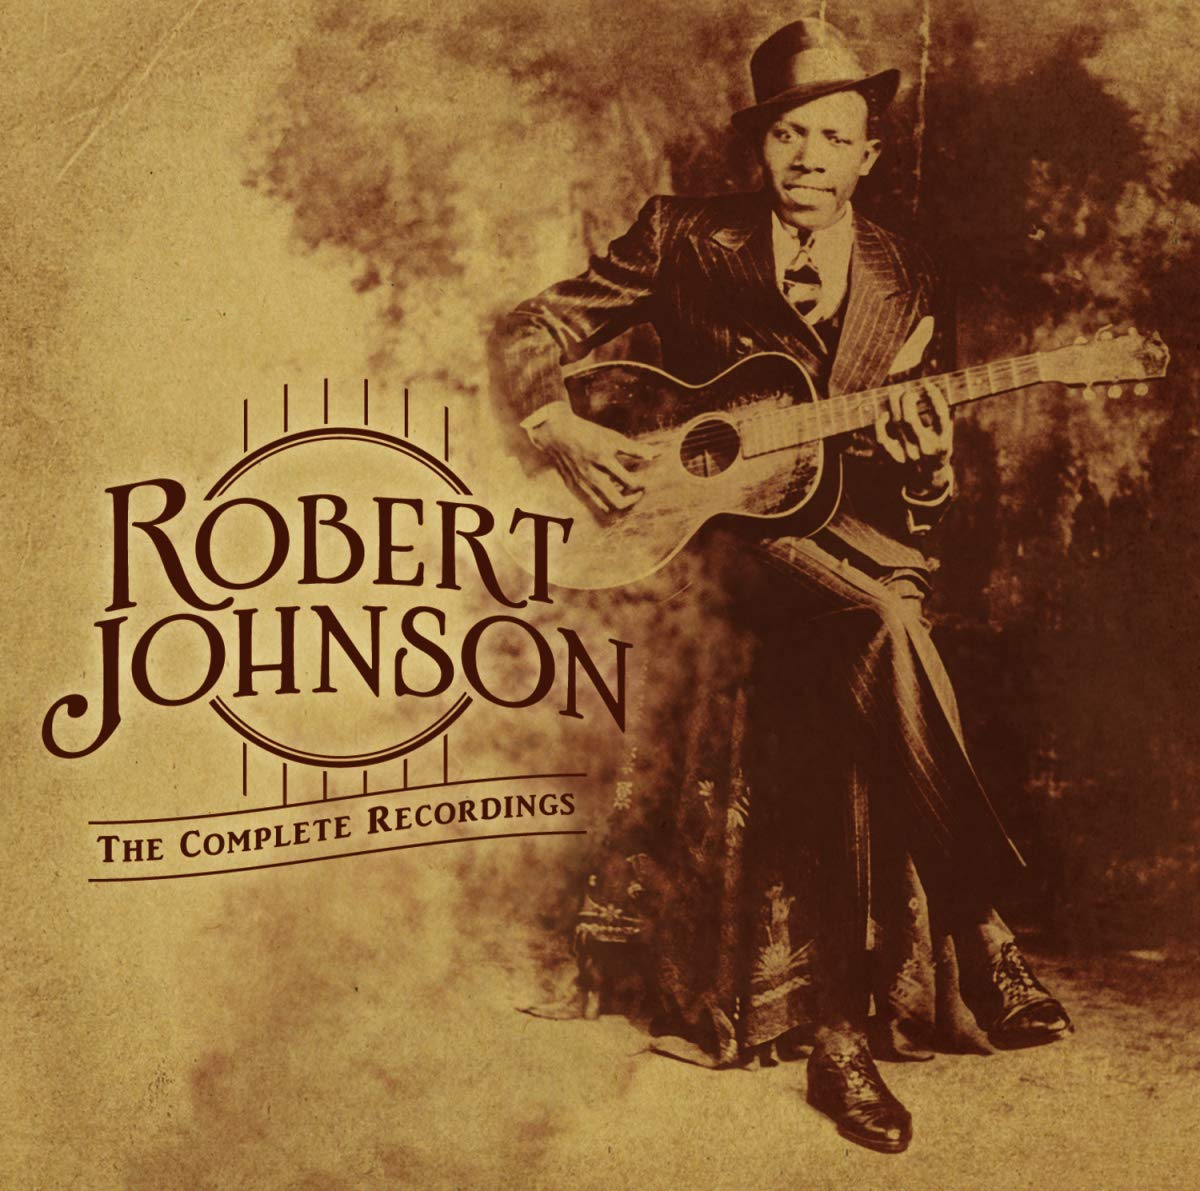 Robert Johnson - The Complete Recordings (1990) [FLAC] Download